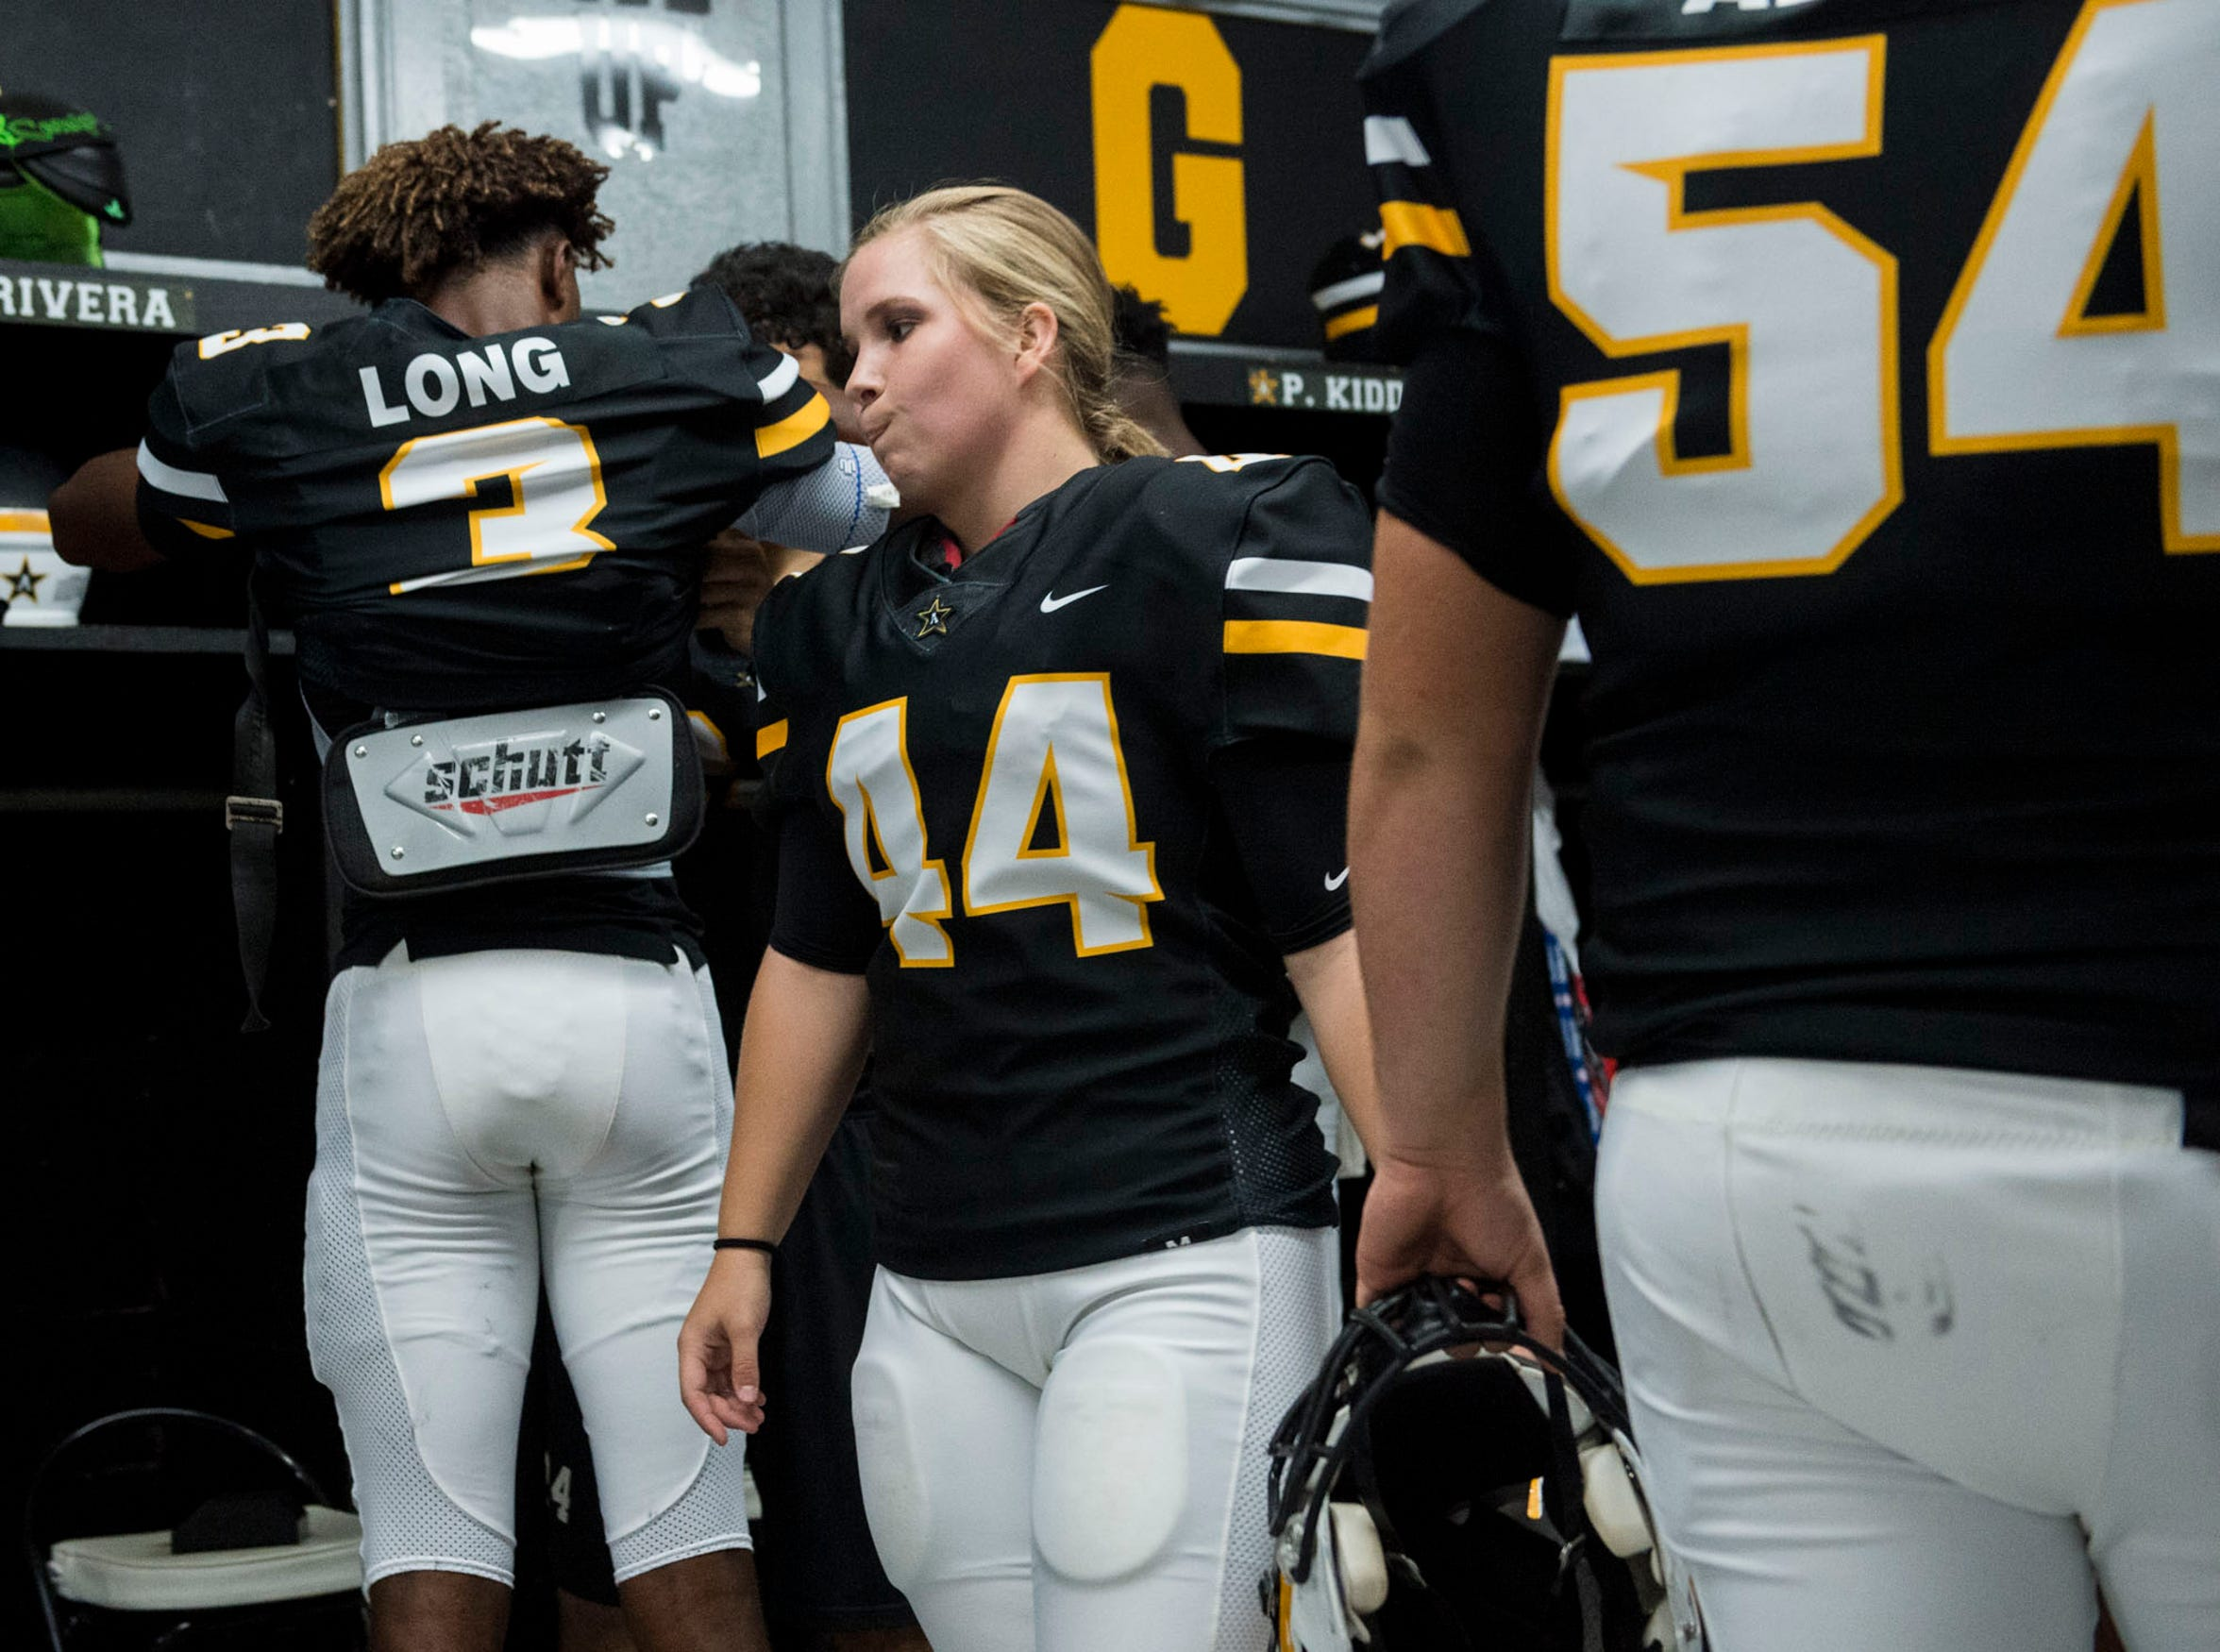 Autauga's Emma Wendland (44) hangs out in the locker room before the game at Autauga Academy in Prattville, Ala., on Friday, Sept. 27, 2019. Autauga Academy defeated Tuscaloosa Academy 40-16.